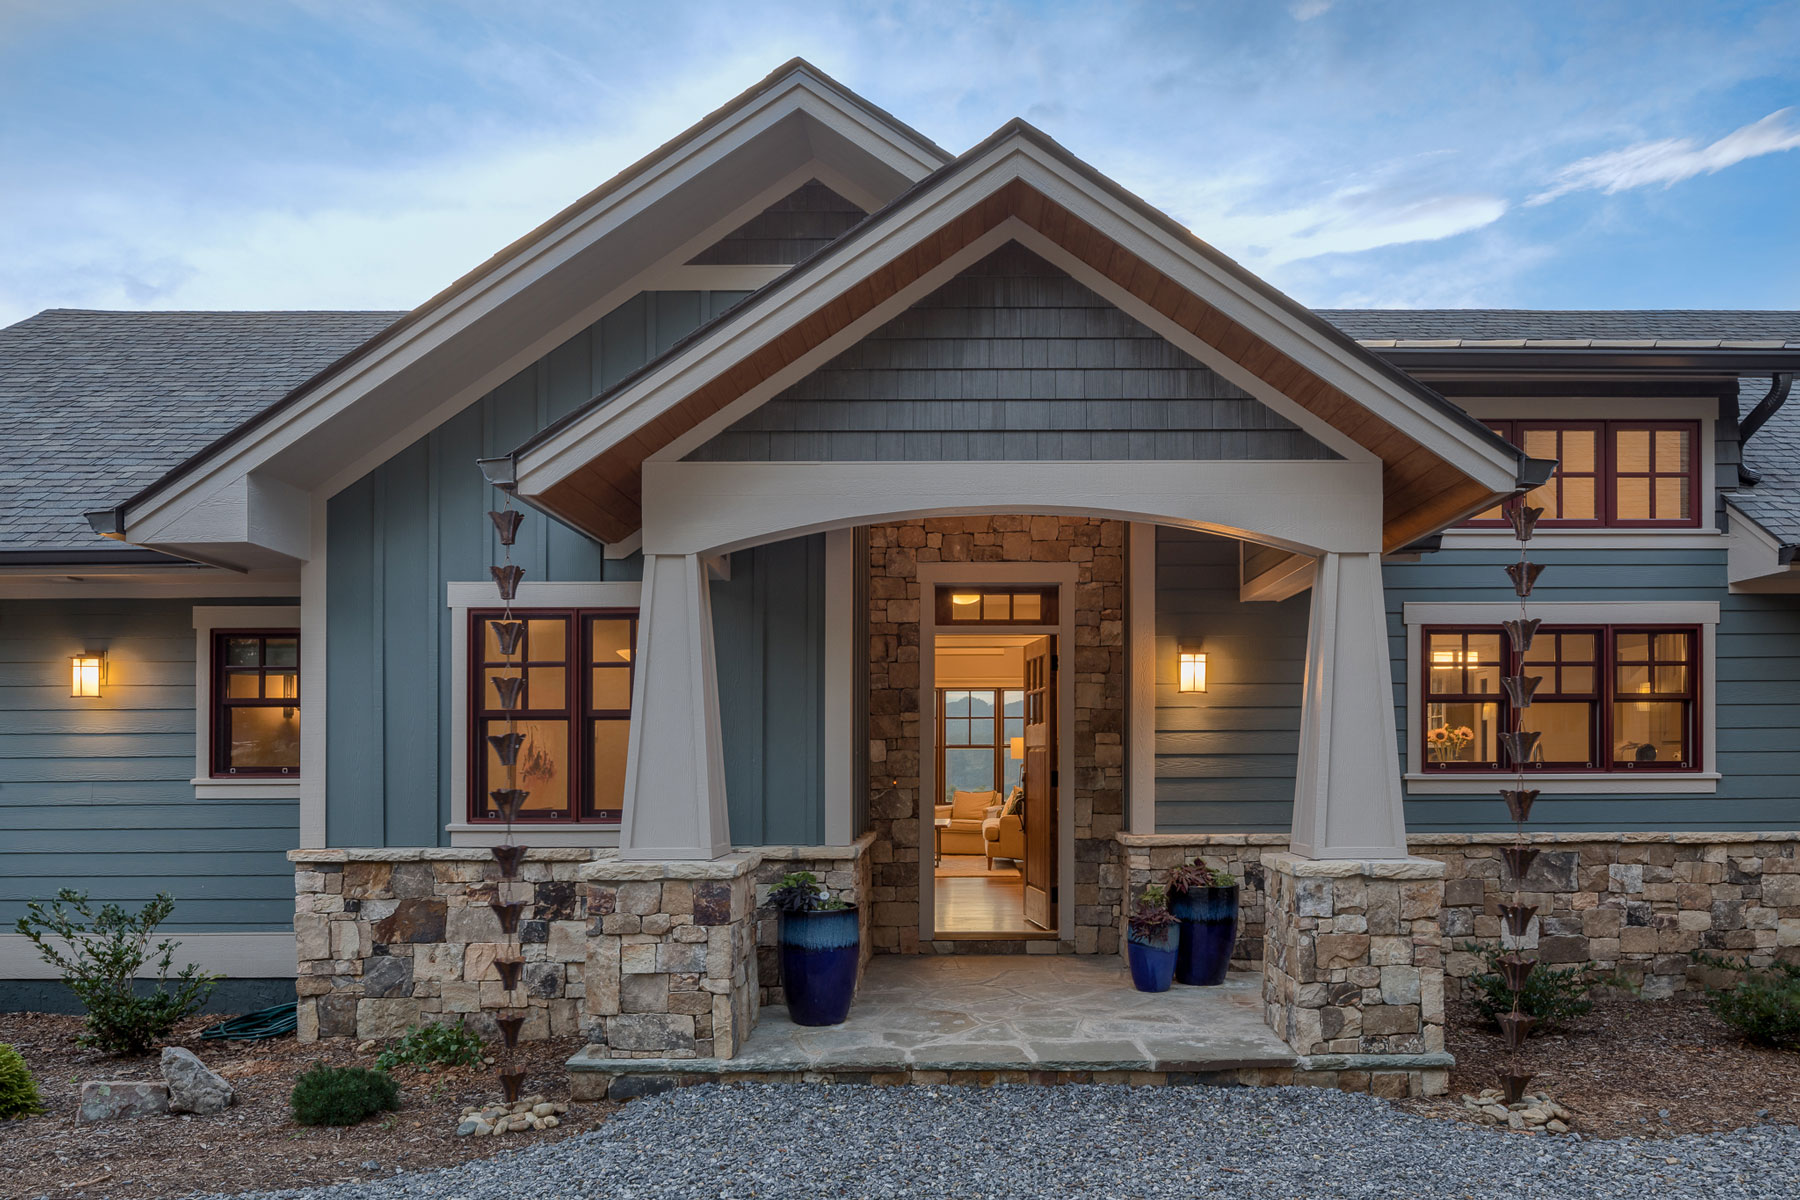 New Build, steep slope custom mountain home, traditional craftsman style